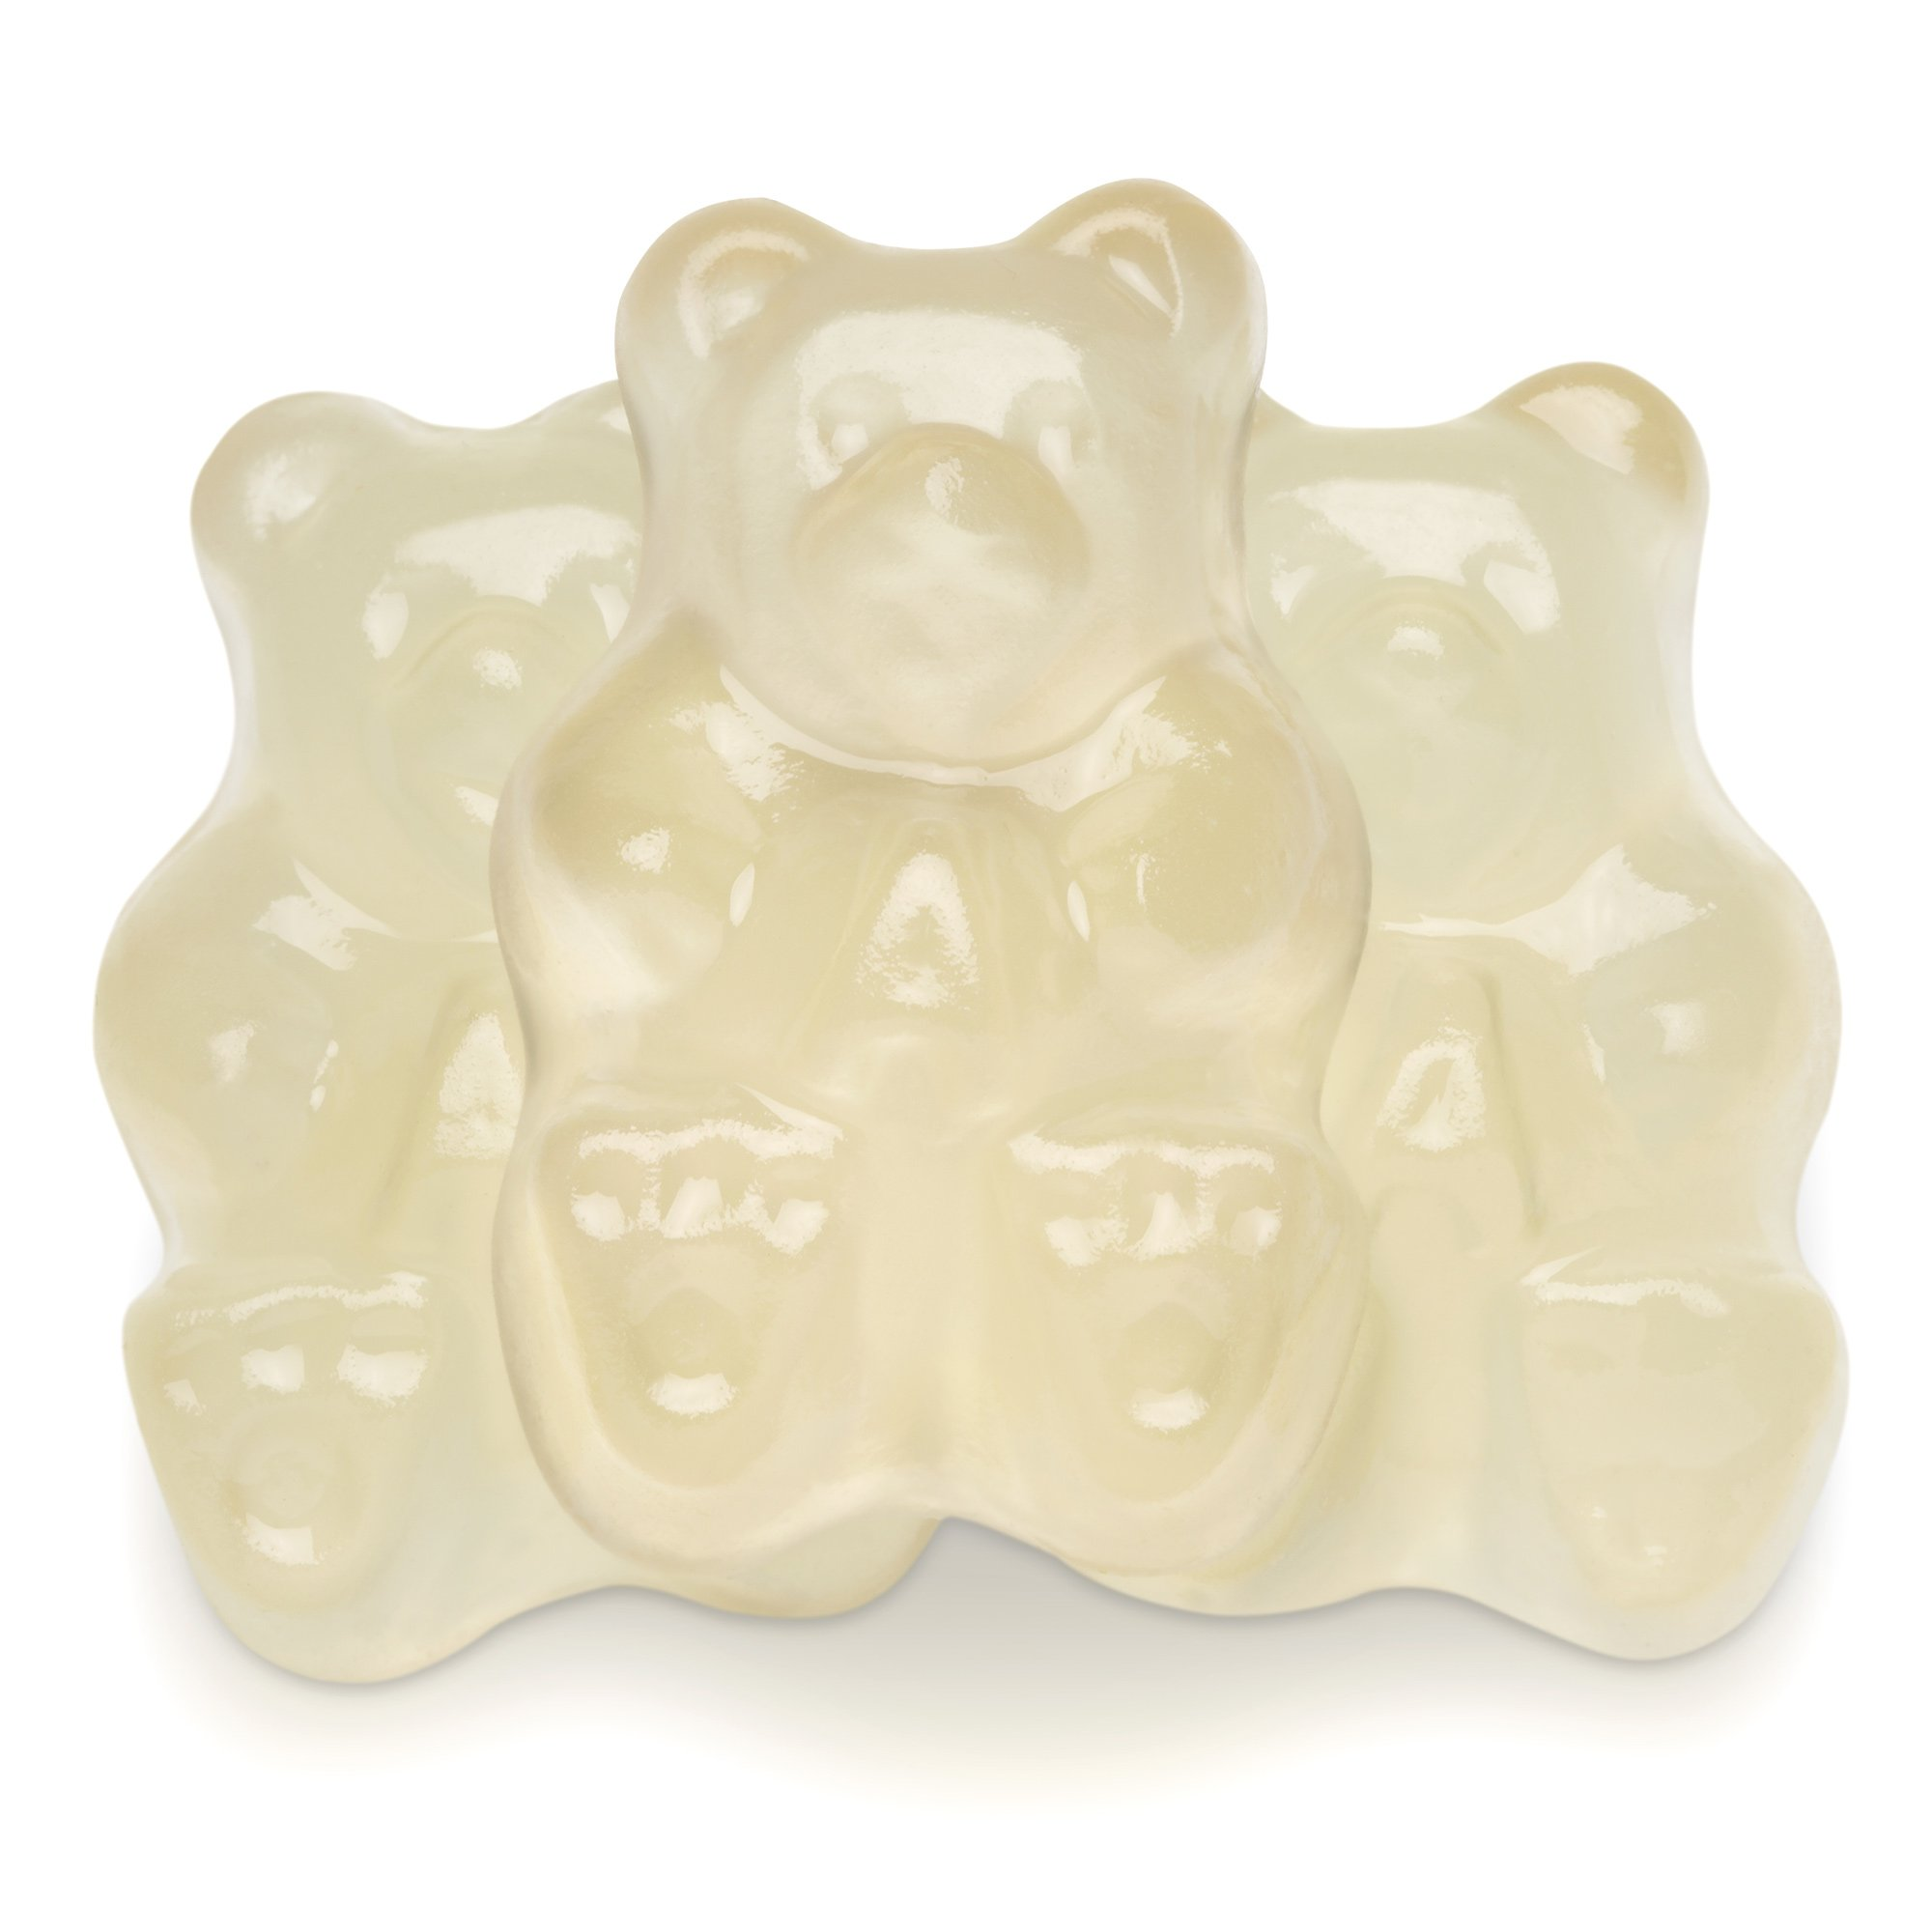 Albanese Candy, Pineapple Gummi Bears, 5-pound Bag by Albanese (Image #4)